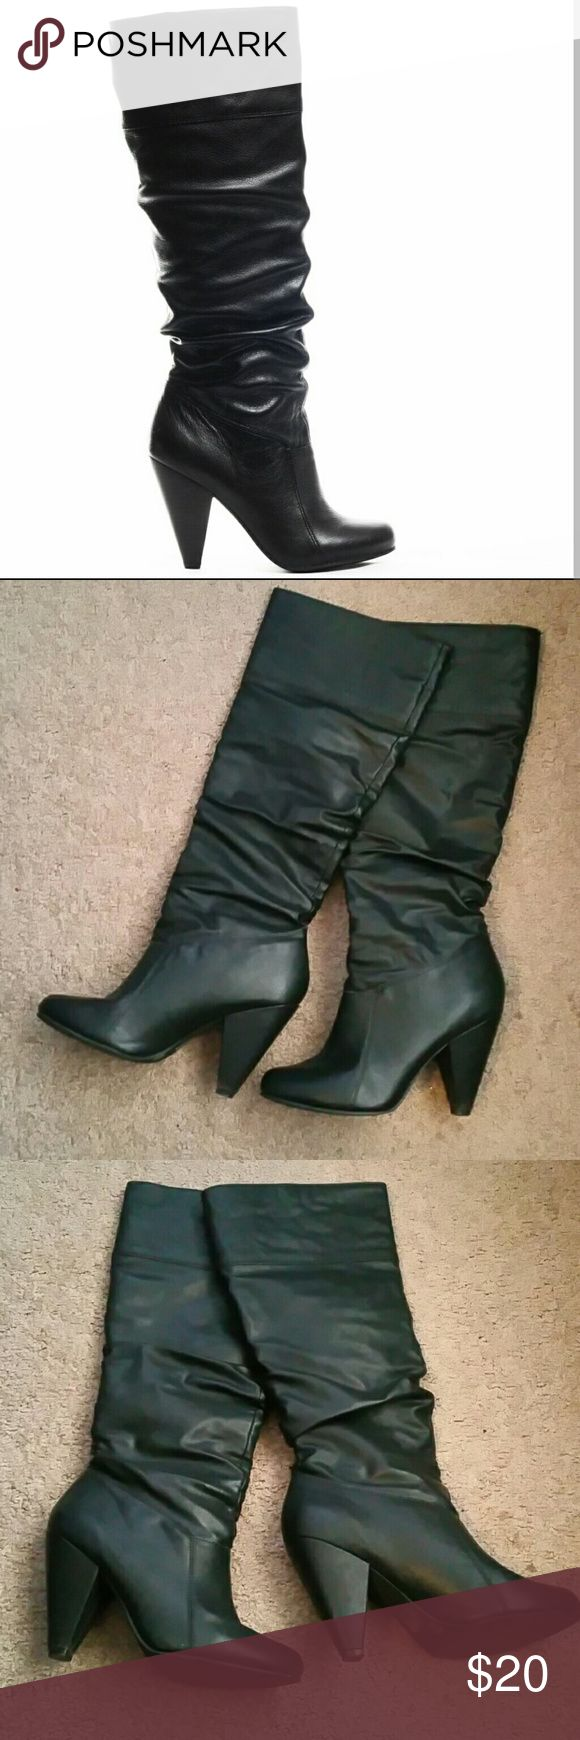 Jessica simpson boots Jessica simpson knee high boots, leather upper, sz 8, flaws shown in picture 5  (priced accordingly ) Jessica Simpson Shoes Heeled Boots